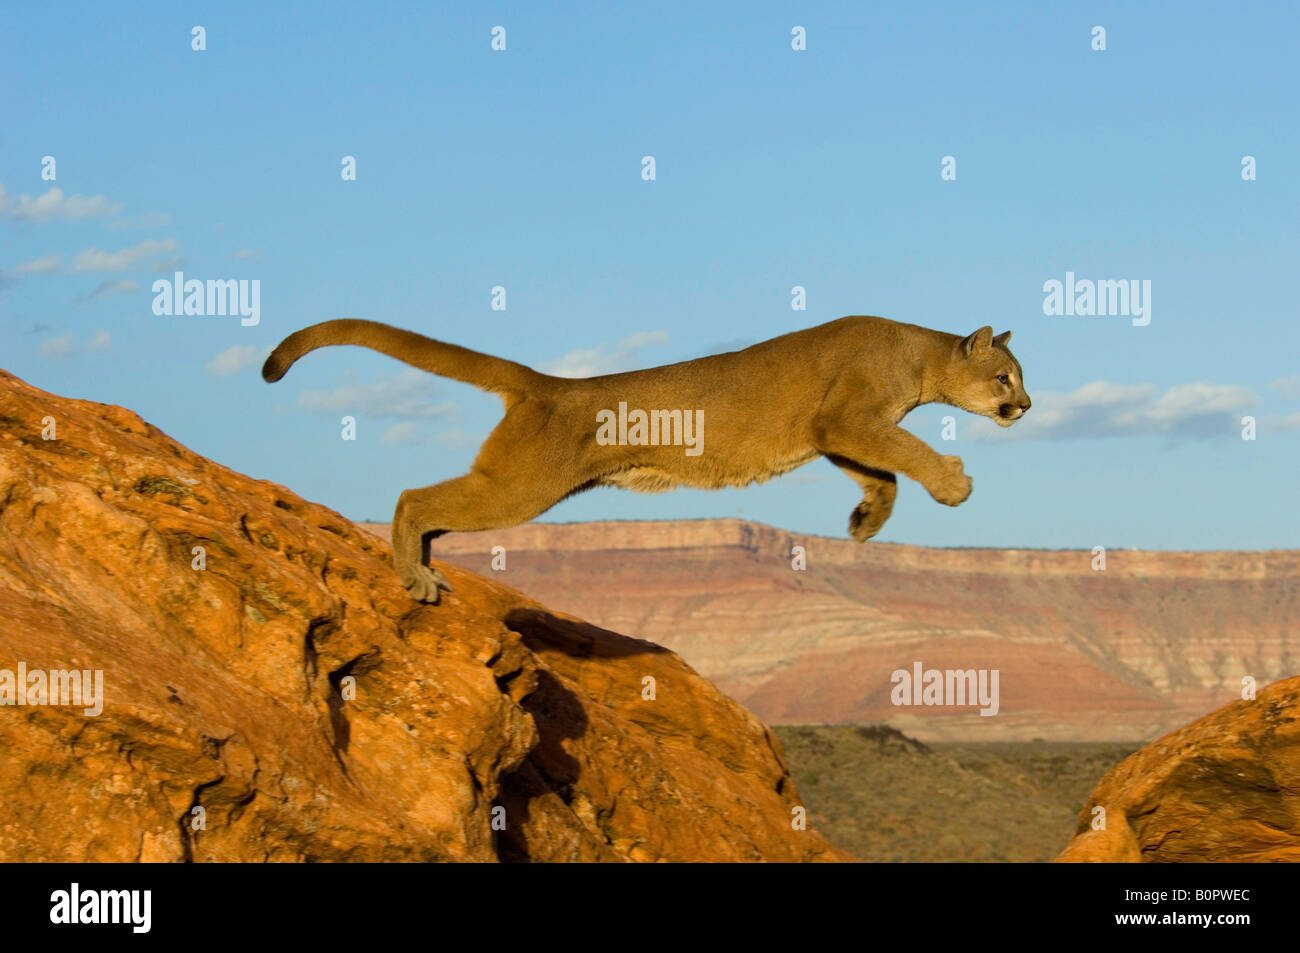 Cougar or Mountain Lion in Native Habitat - Stock Image